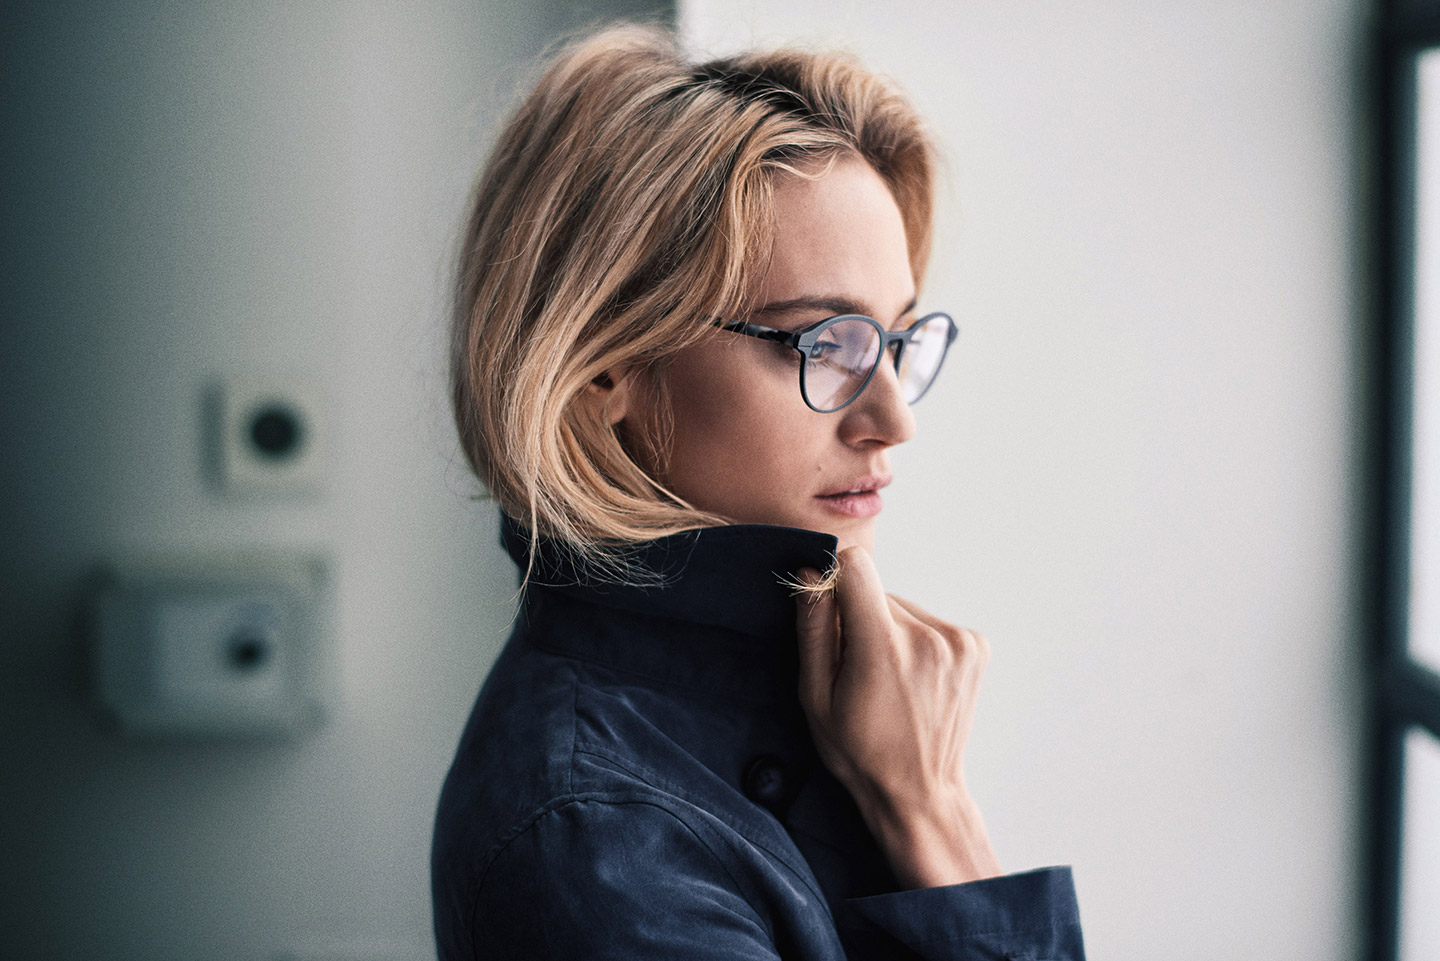 Woman wearing jacket and glasses